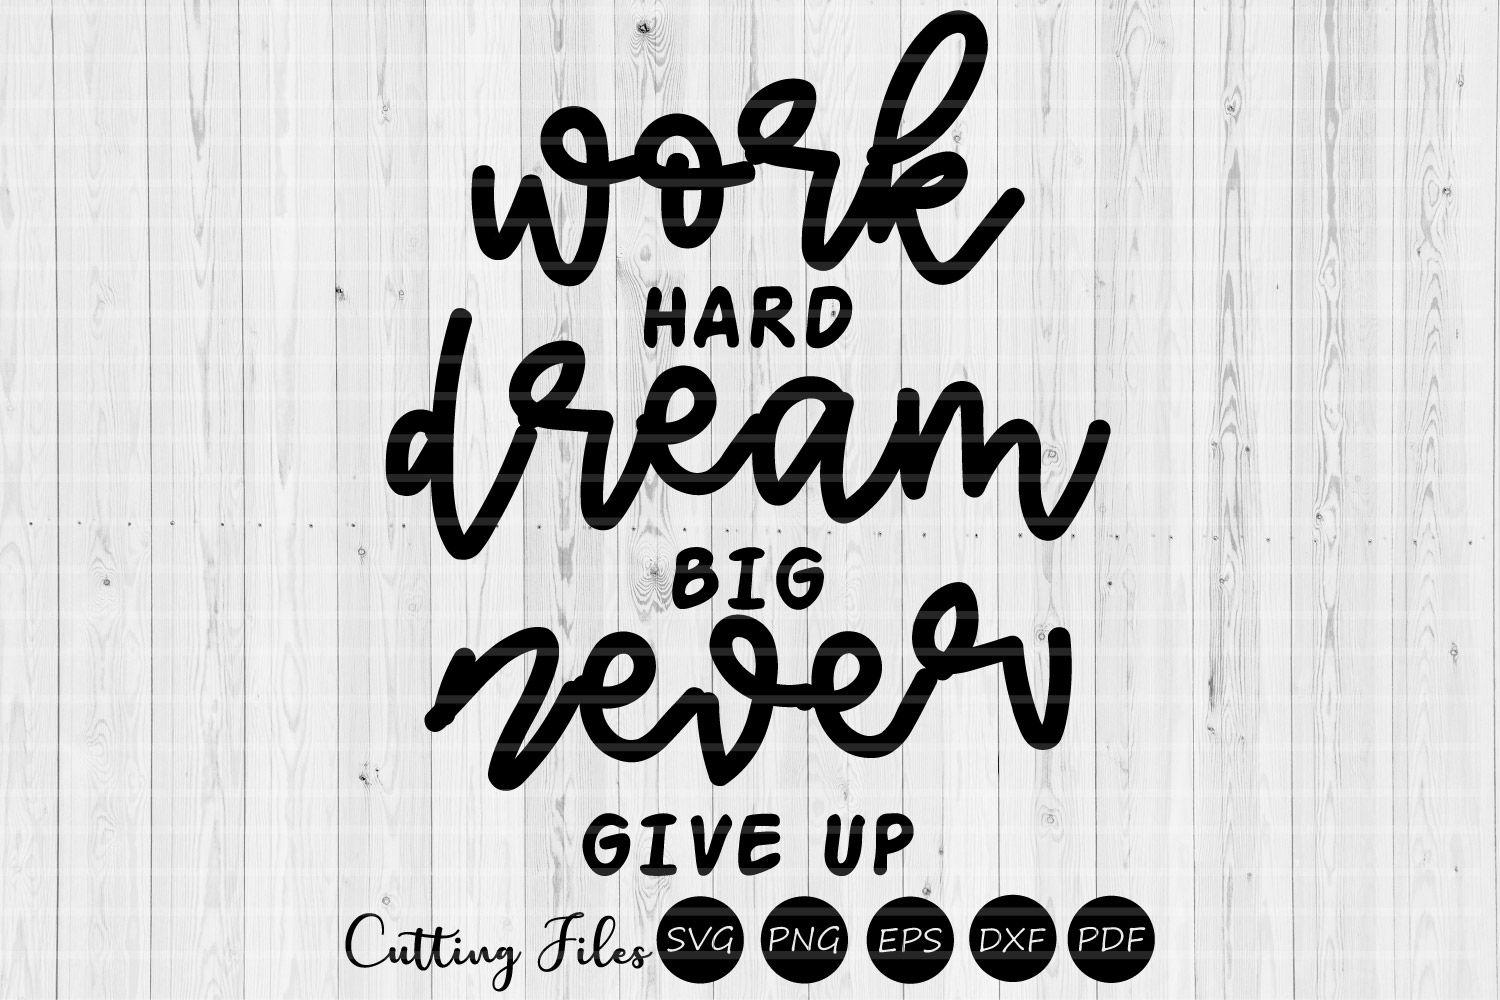 Download Free Work Hard Dream Big Motivational Svg Graphic By Hd Art Workshop for Cricut Explore, Silhouette and other cutting machines.